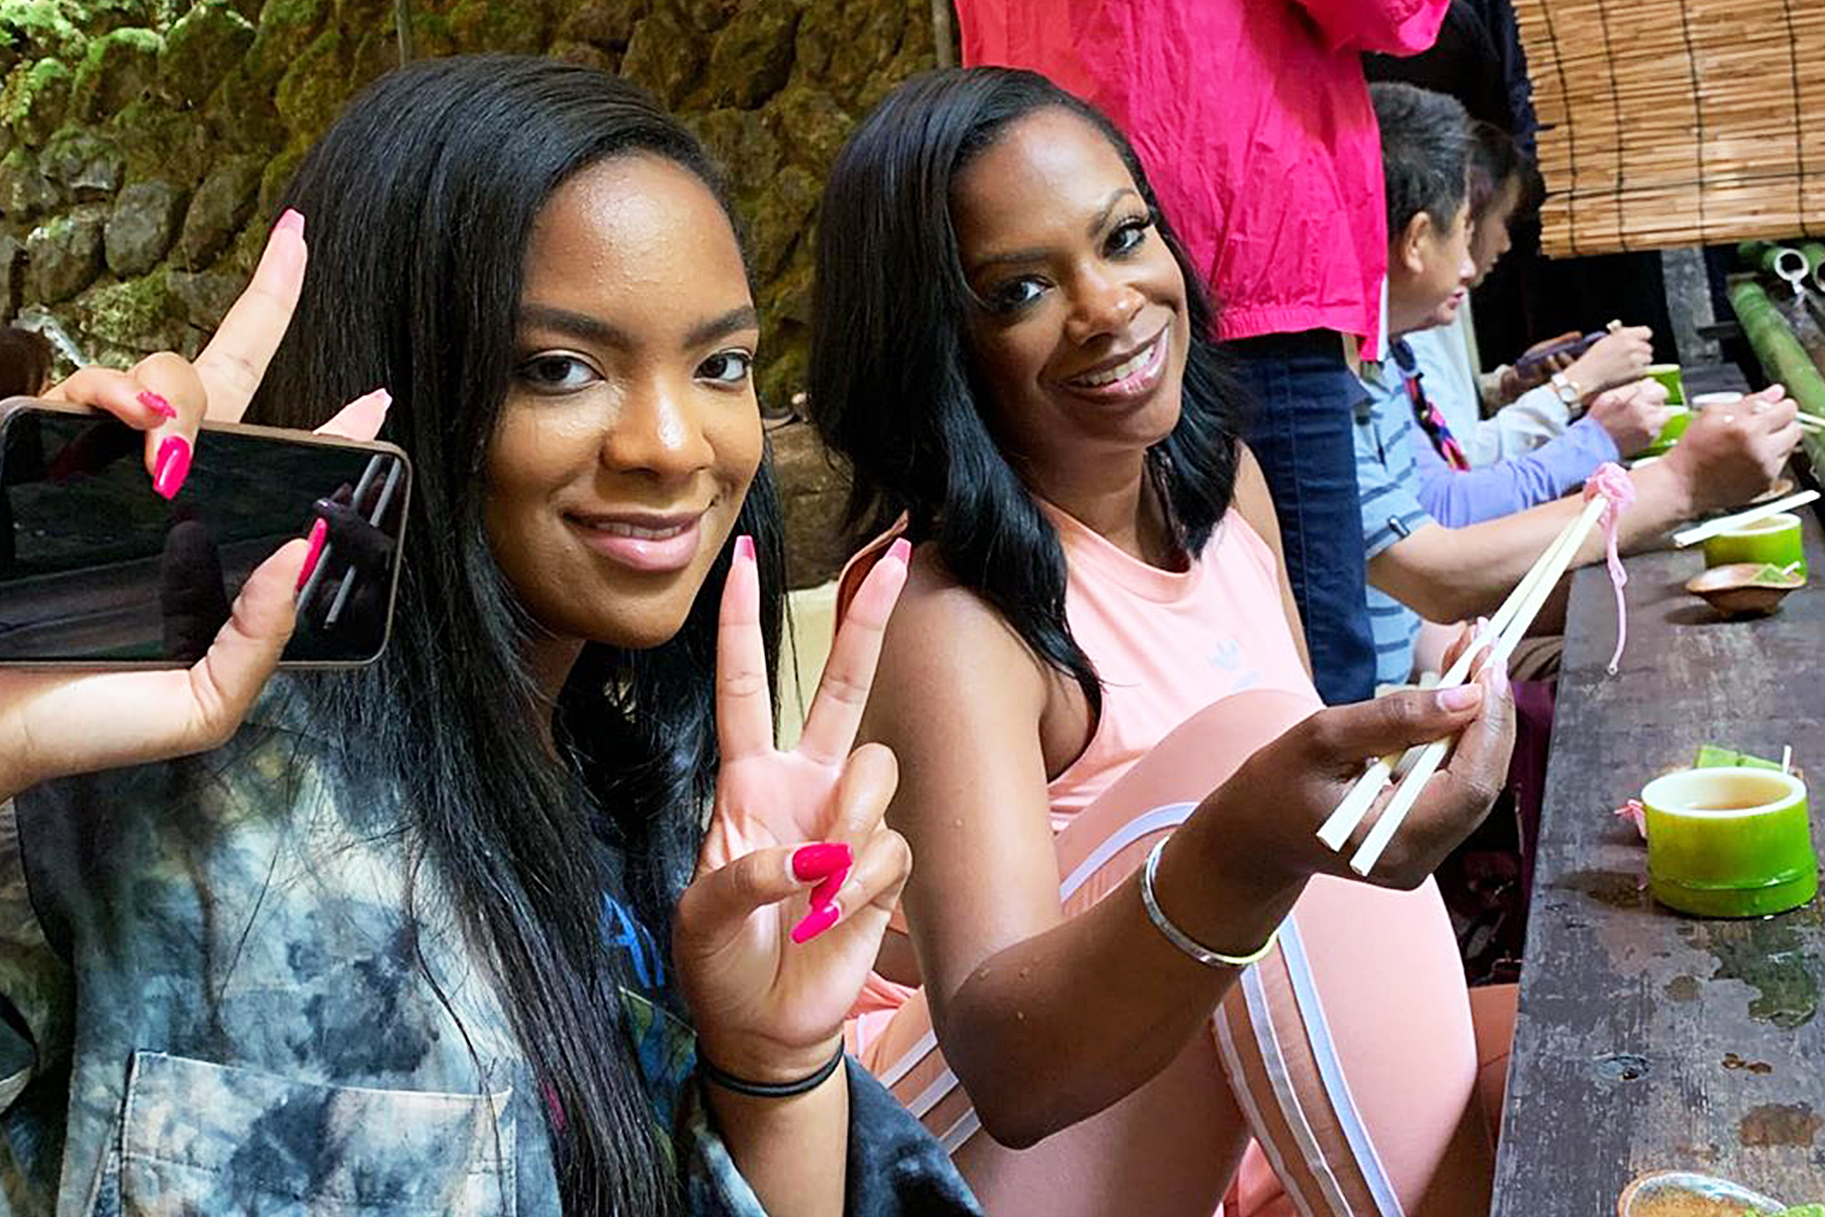 Kandi Burruss Shares More Pics From BeautyCon Event - Check Out Riley Burruss In The Pics